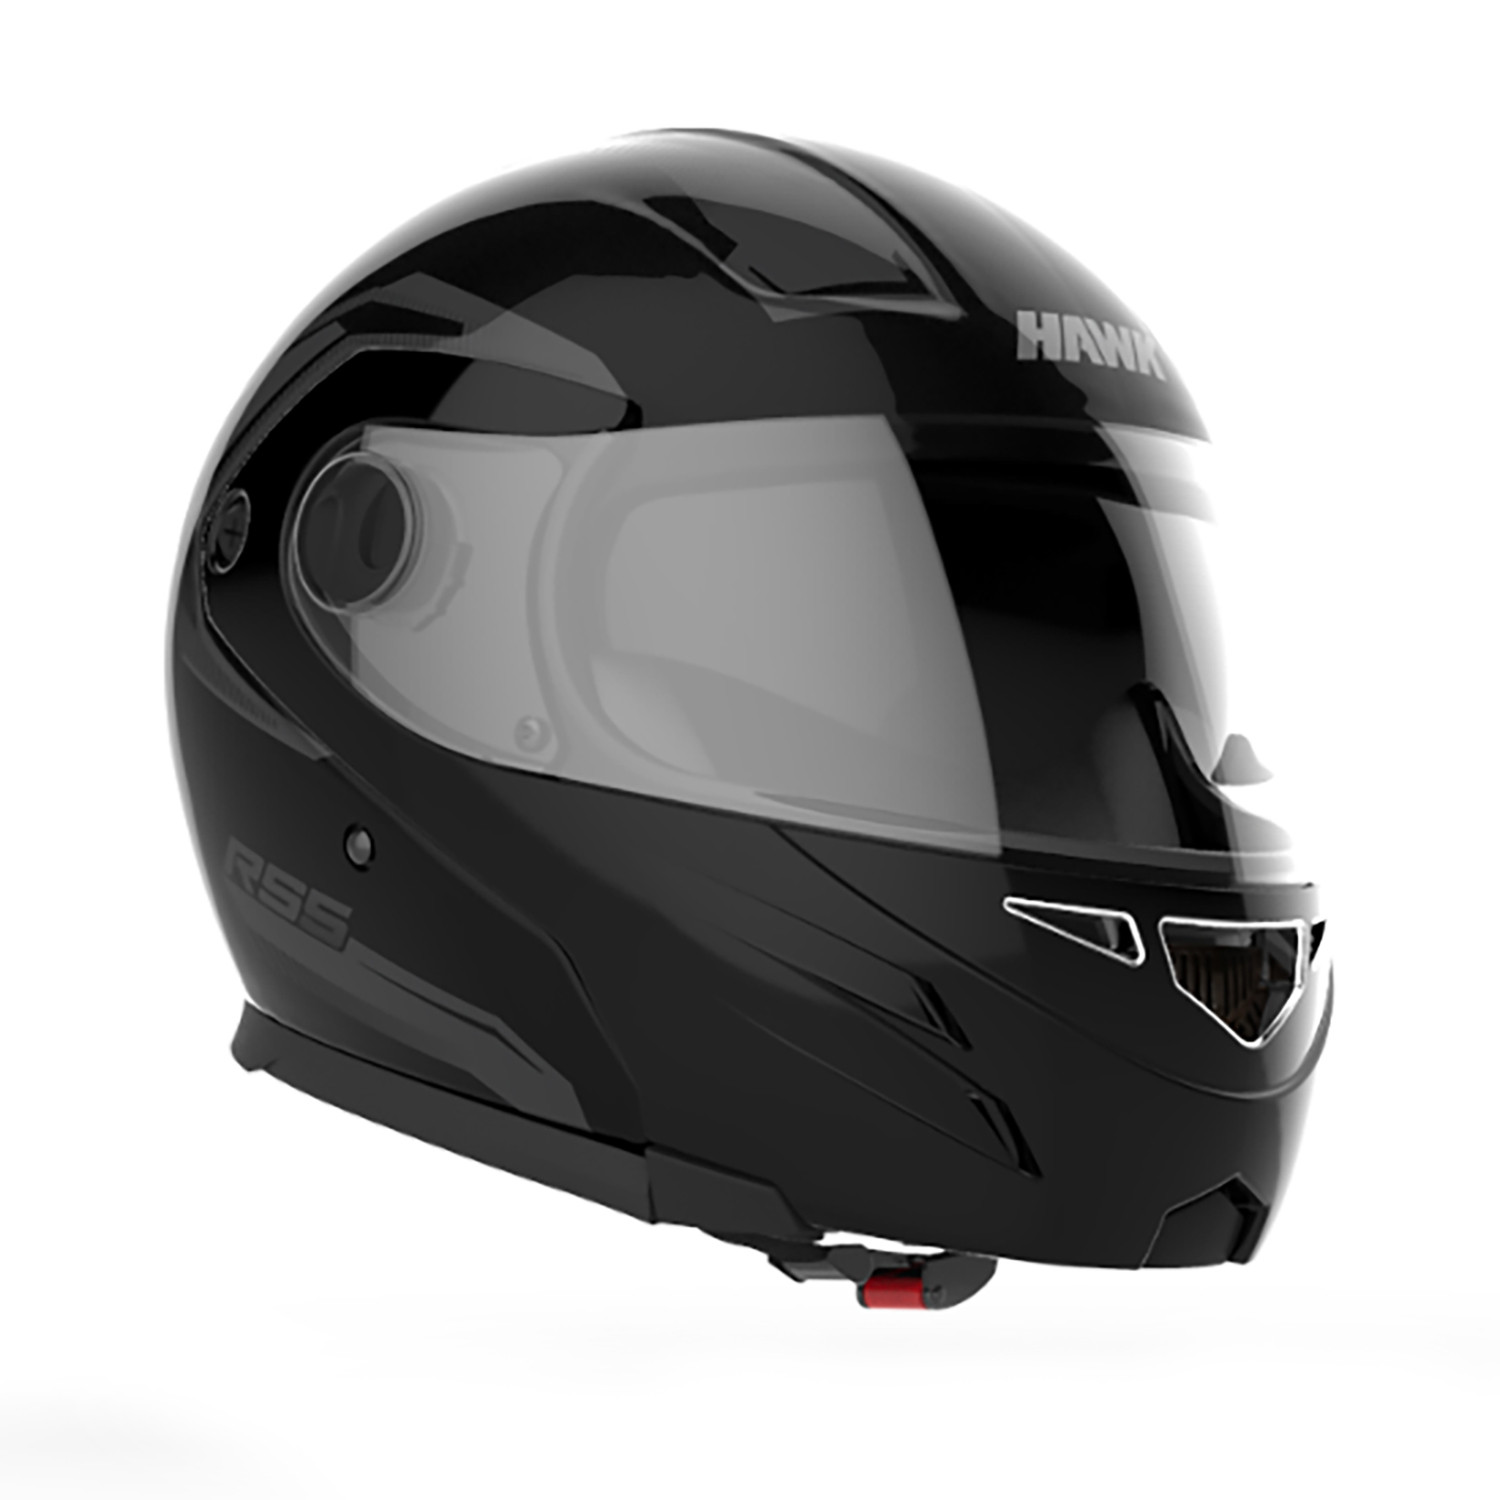 Casco Rebatible Hawk RS5 Vector Negro Brillo